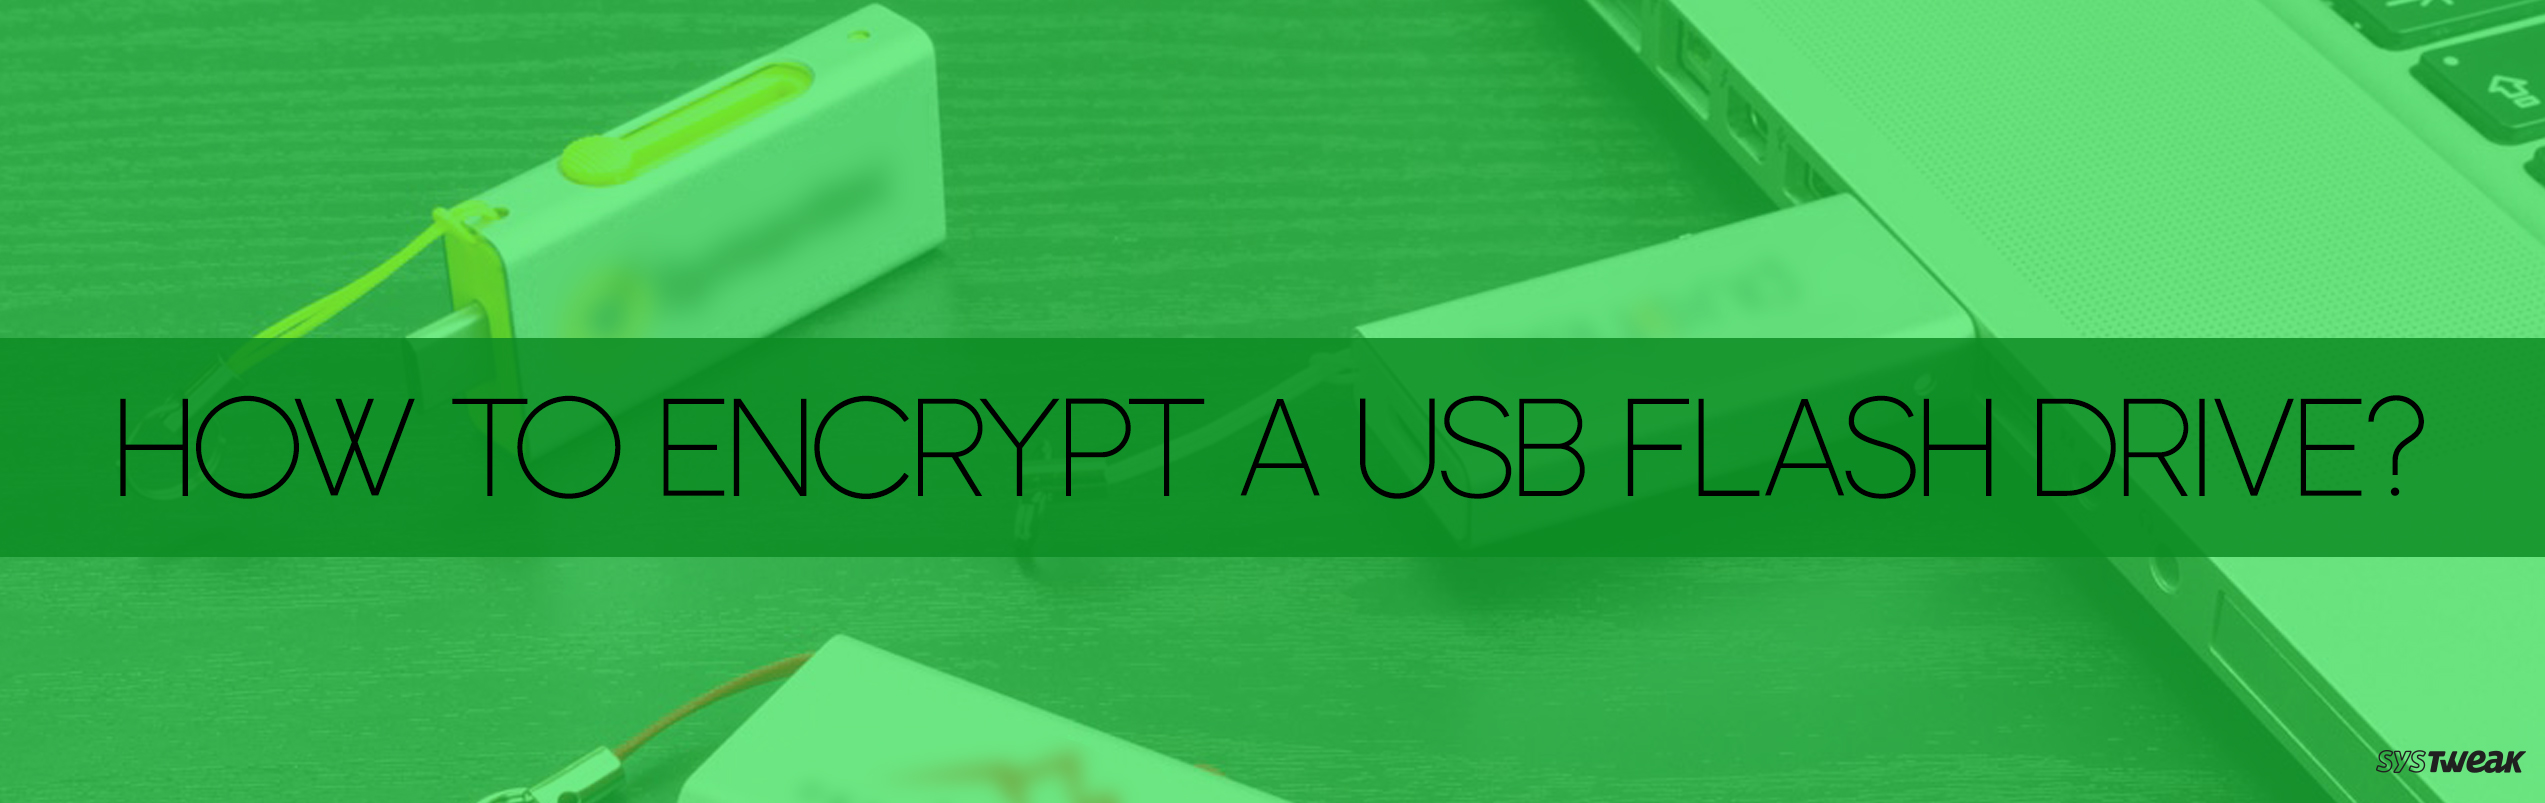 How To Encrypt A USB Flash Drive?